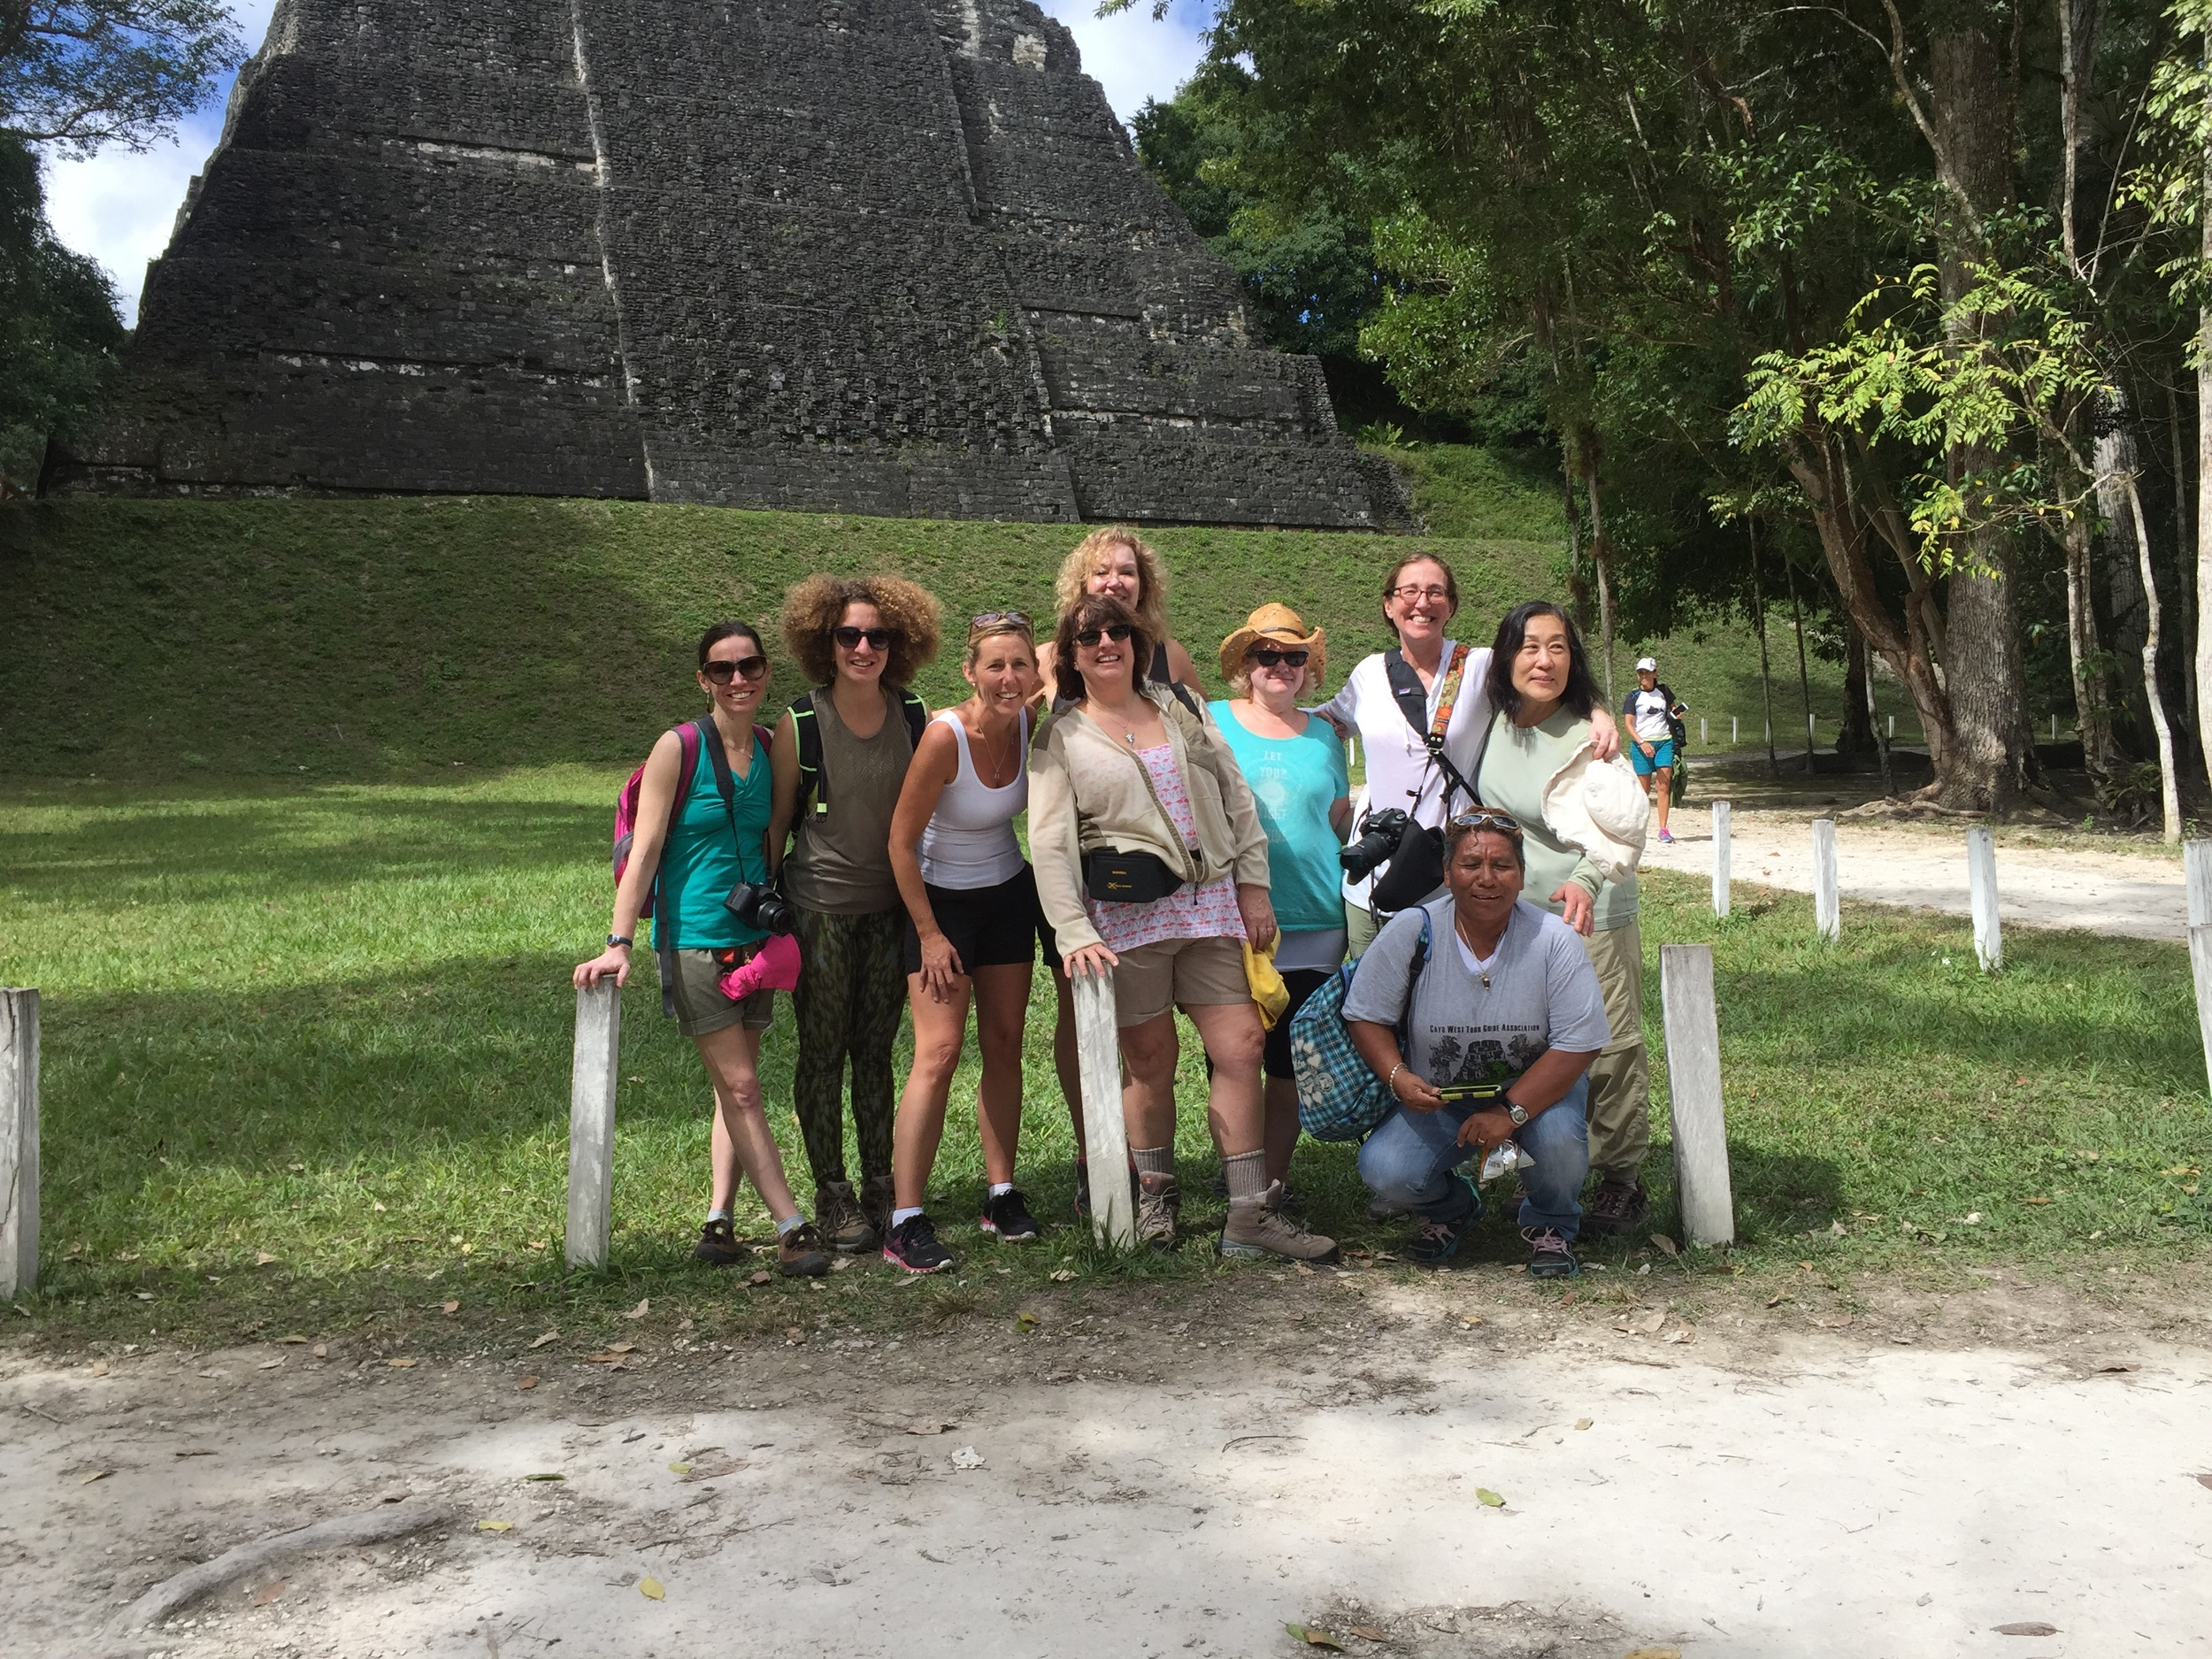 """We finally made it to Tikal!! Wow, what an amazing place and energy there, hearing and seeing the Howler Monkeys…I felt like I was in """"Indiana and The Temple of Doom""""!! So cool and fun, we were doing yoga poses and being gitty!"""